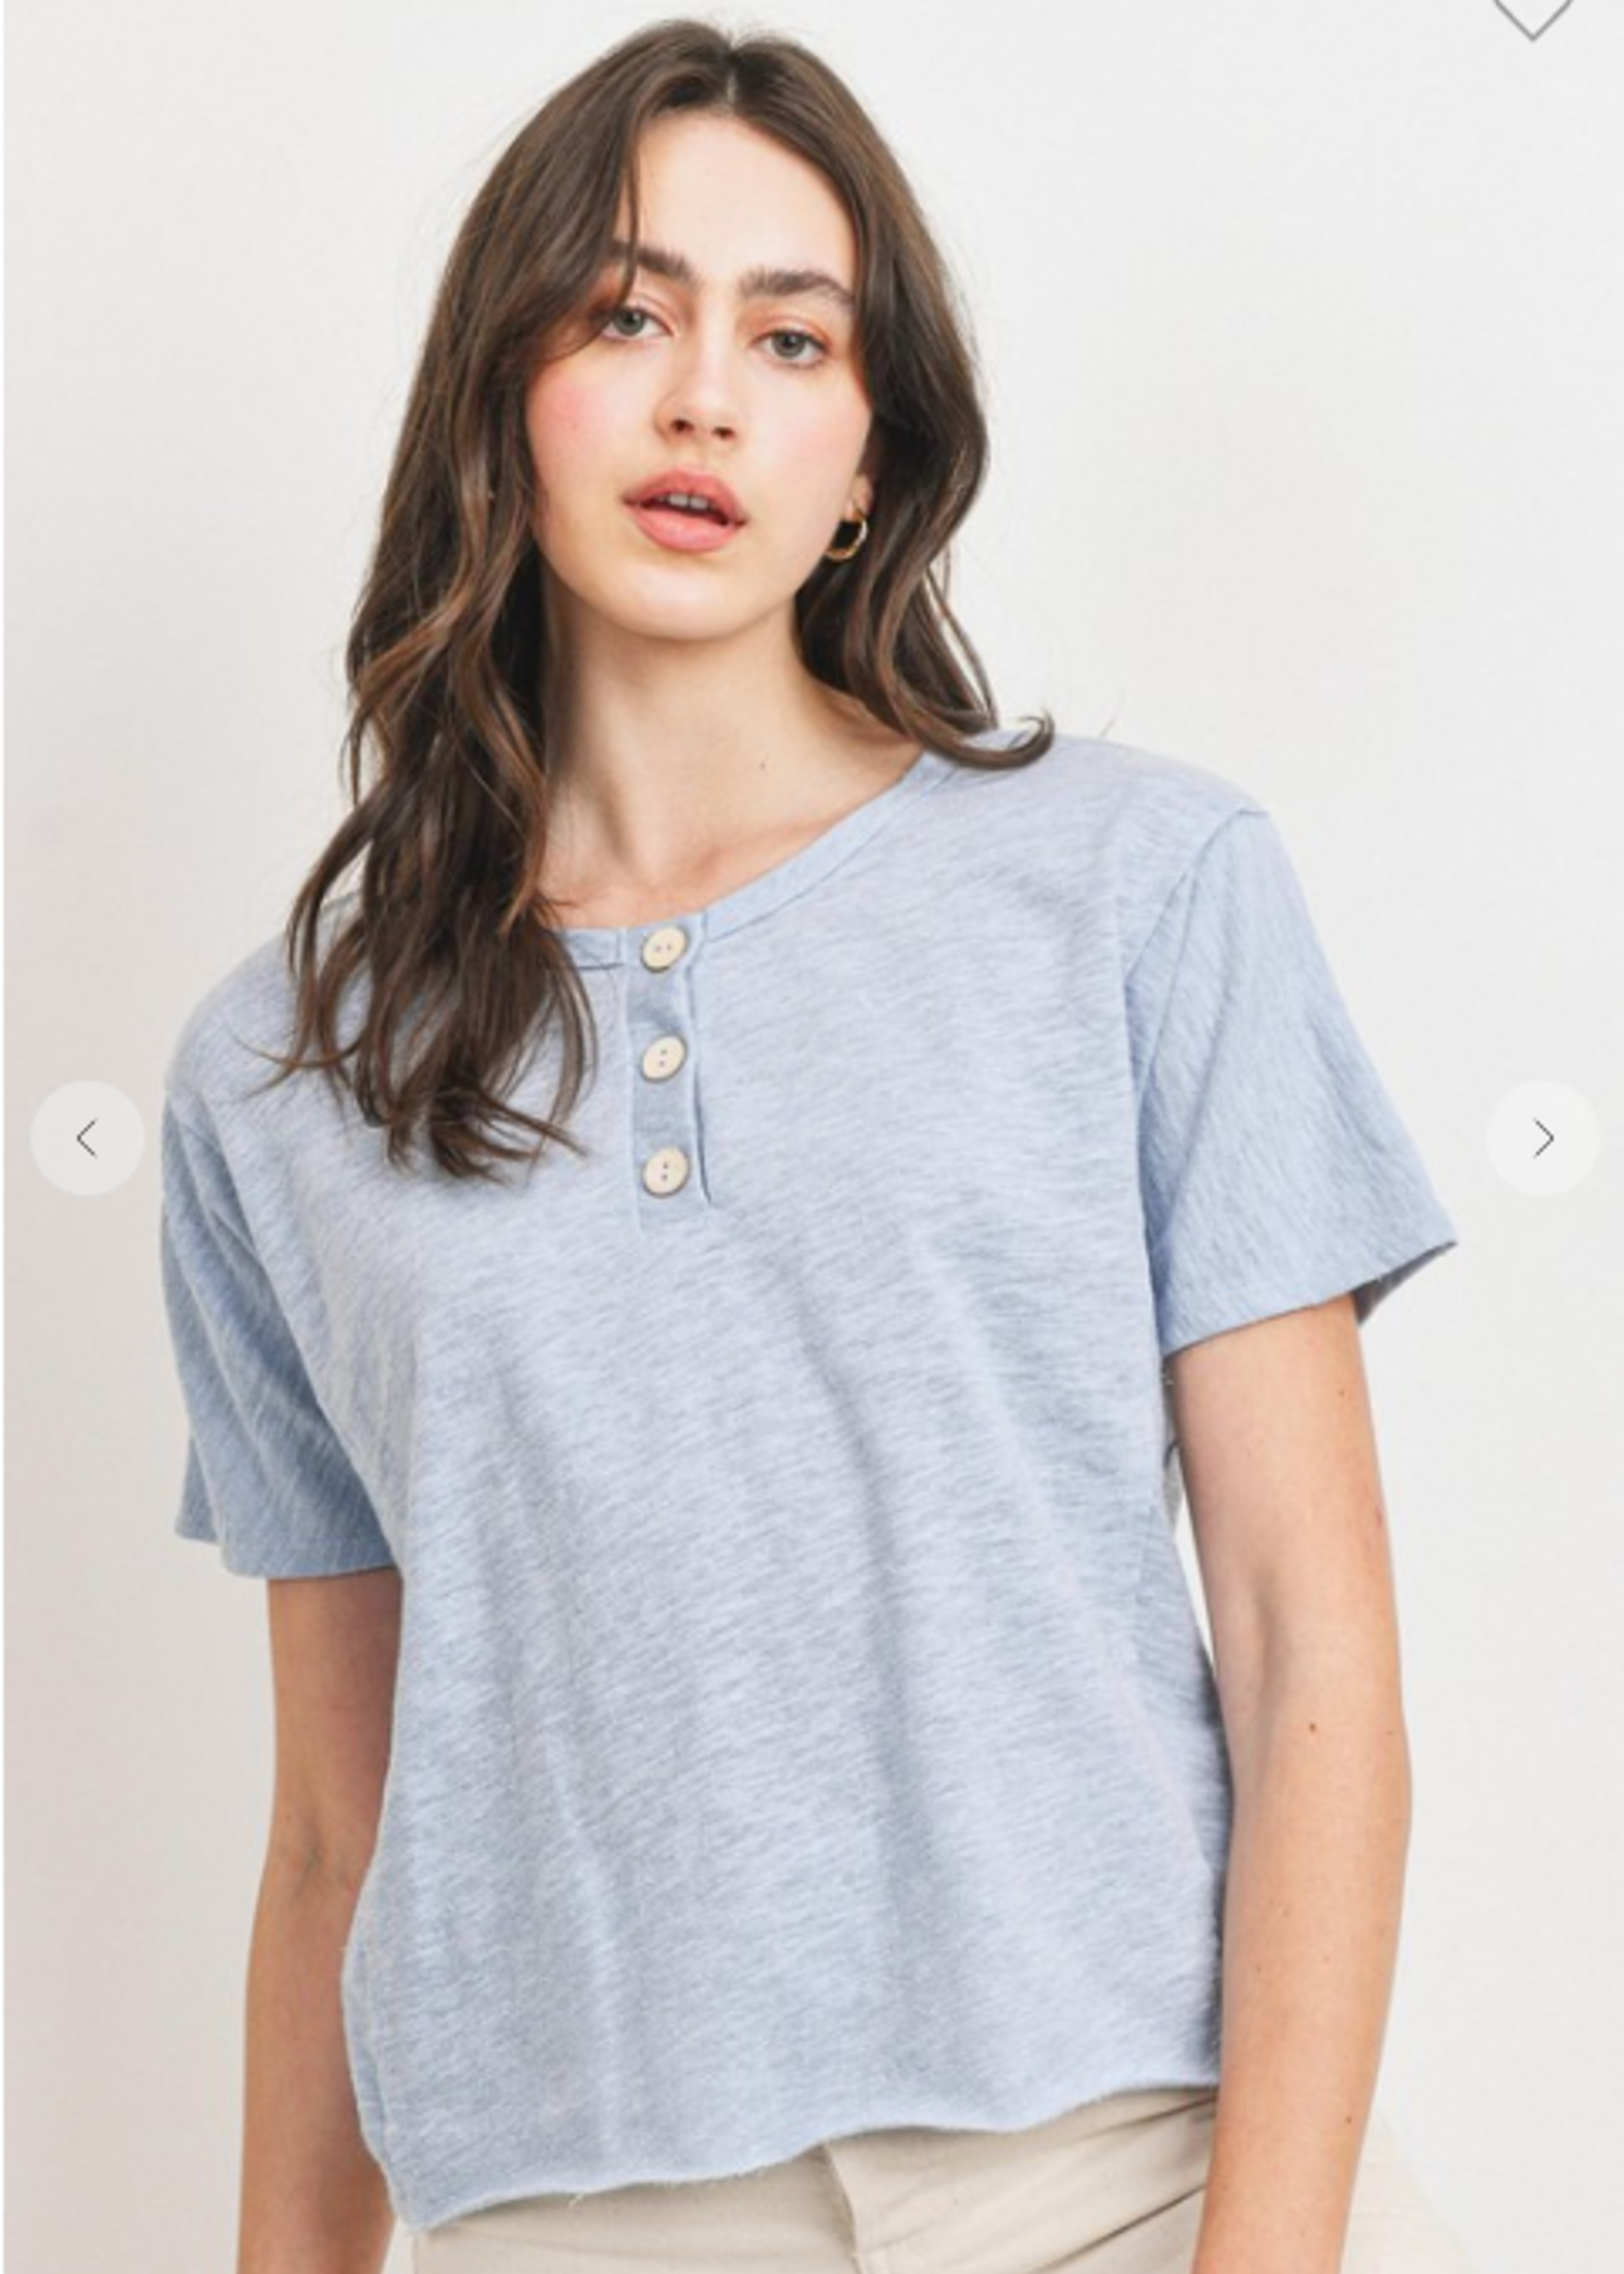 French Terry Button Front Top - Light Blue